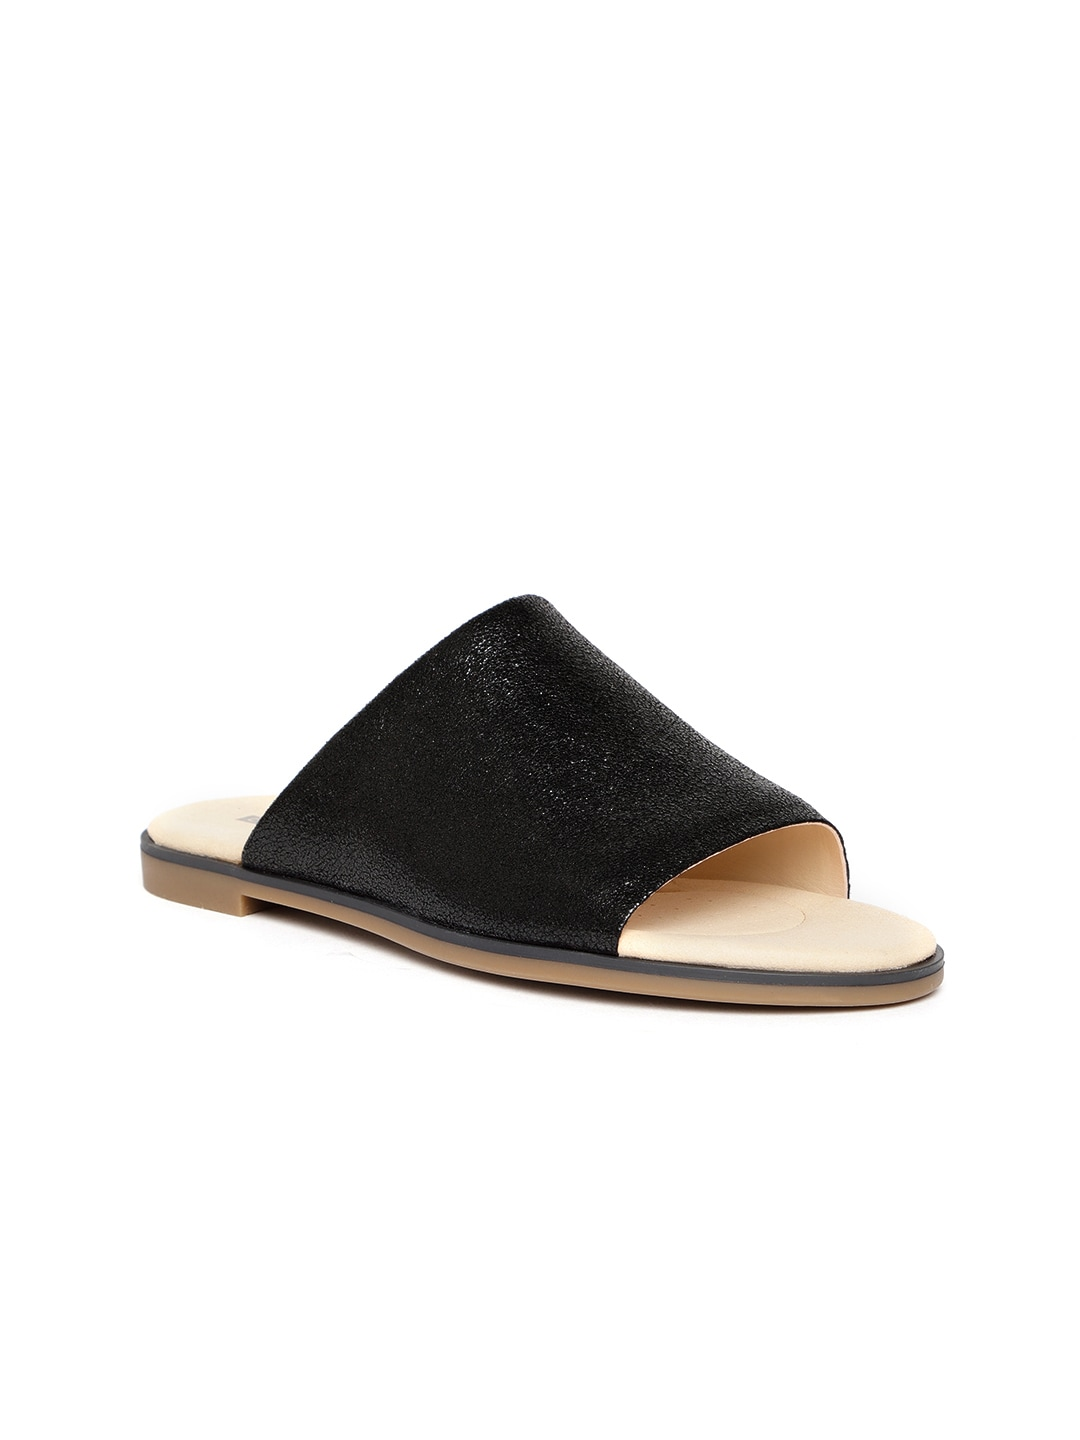 ca644775132 CLARKS - Exclusive Clarks Shoes Online Store in India - Myntra